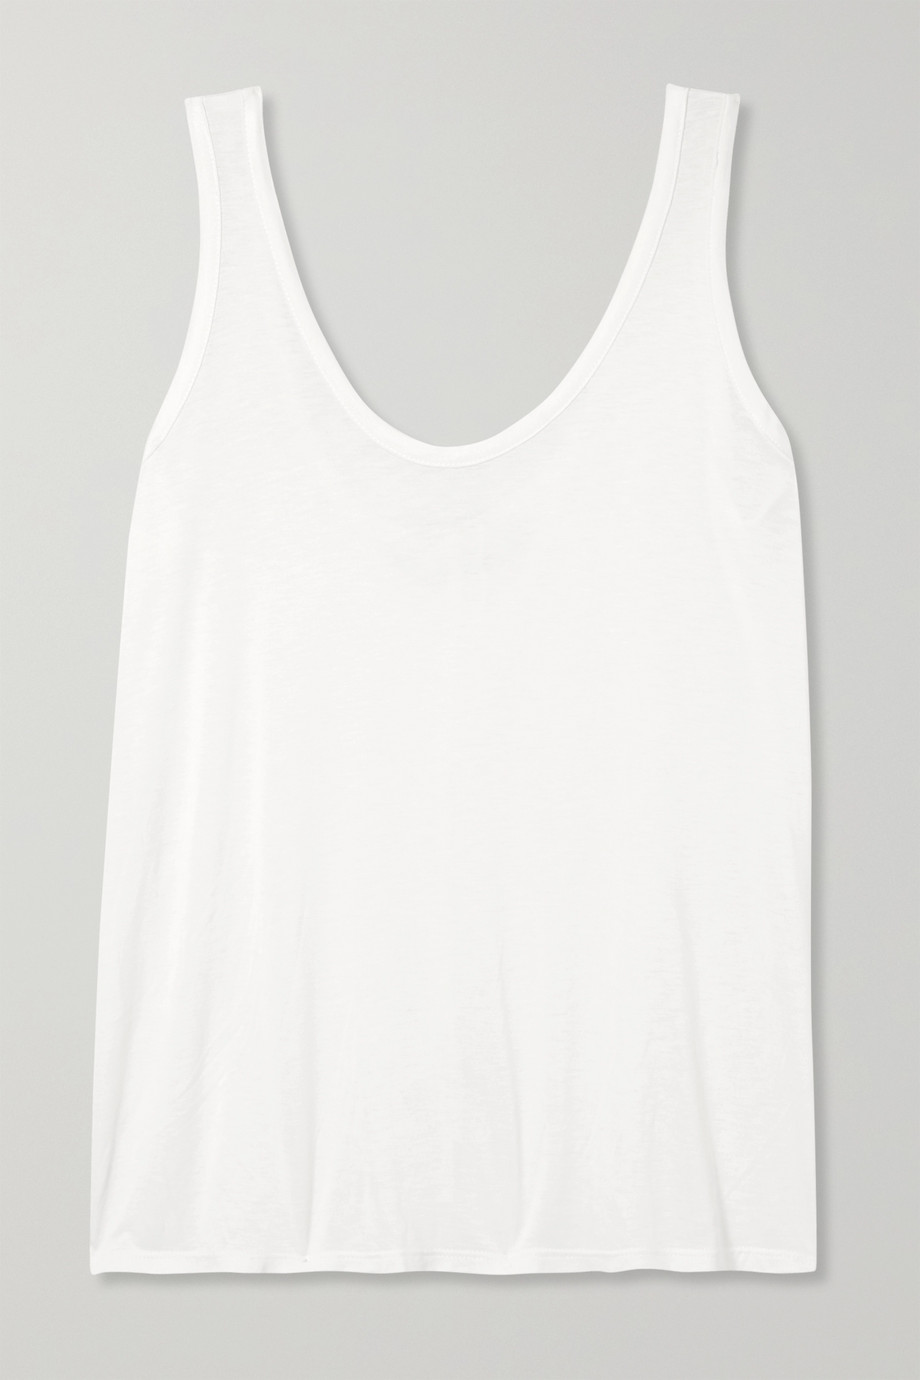 THE ROW Thomaston slub jersey tank